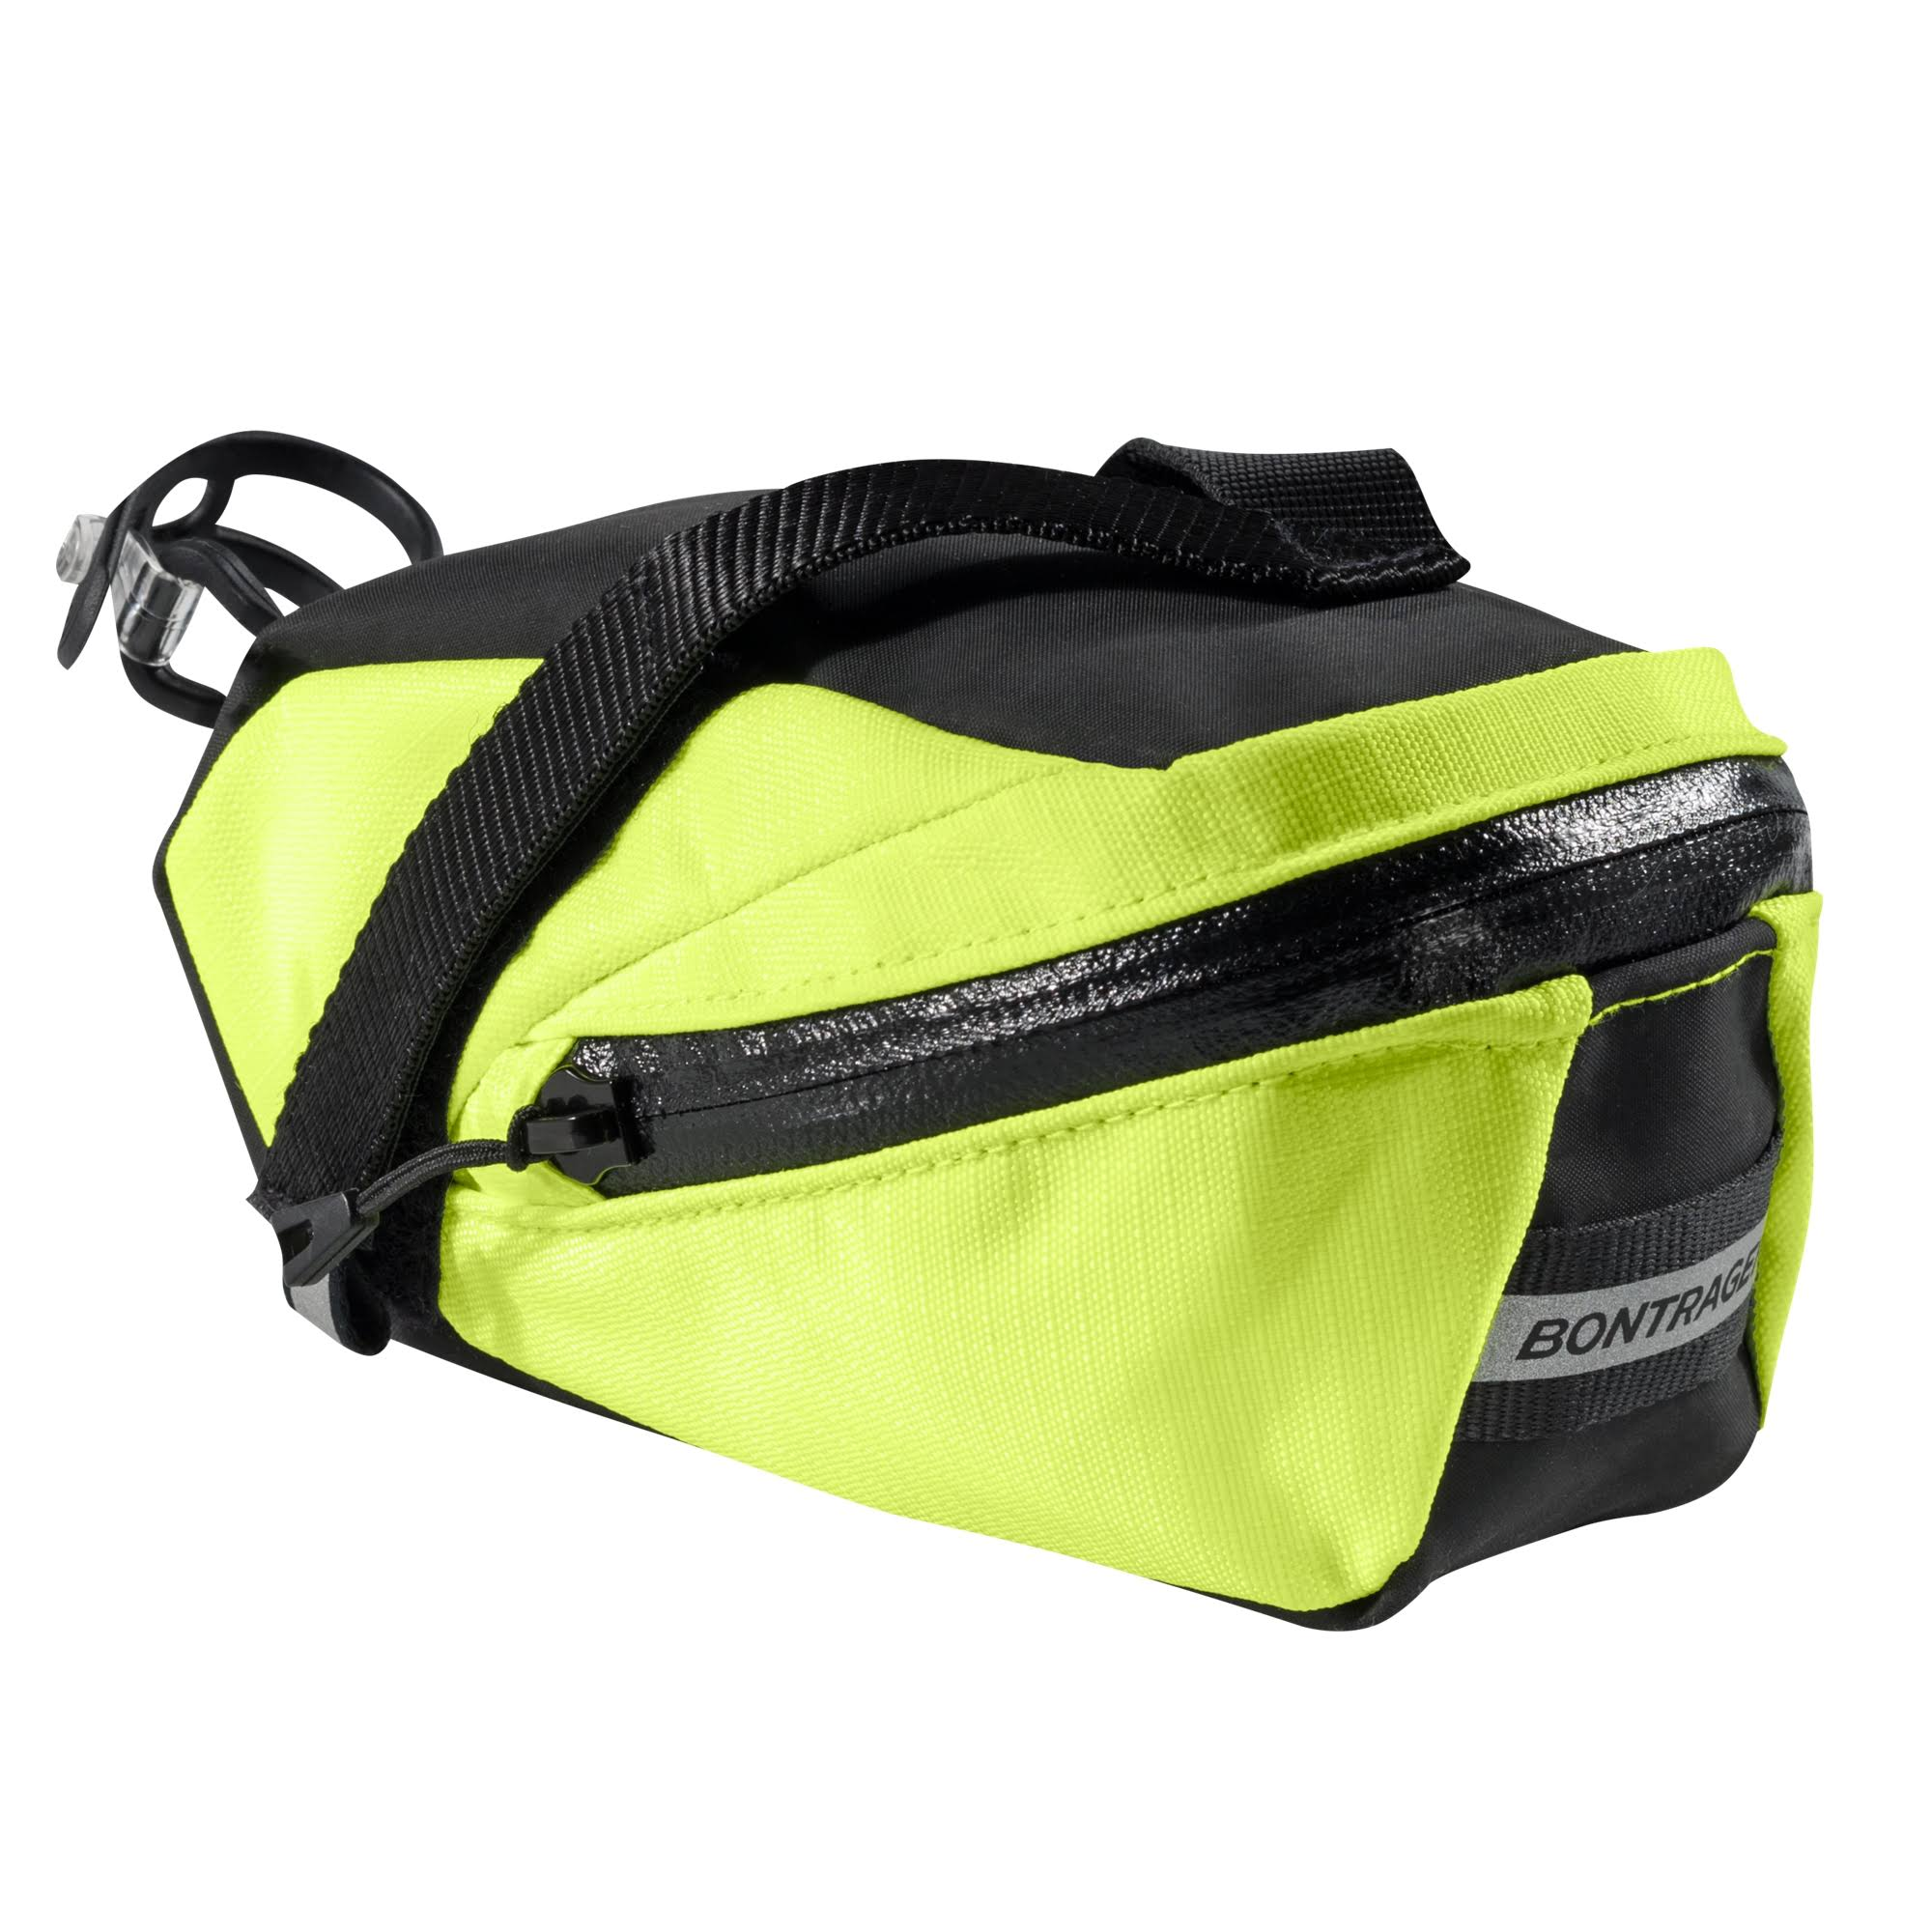 Bontrager Tasche Elite Seat Pack - Visibility Yellow